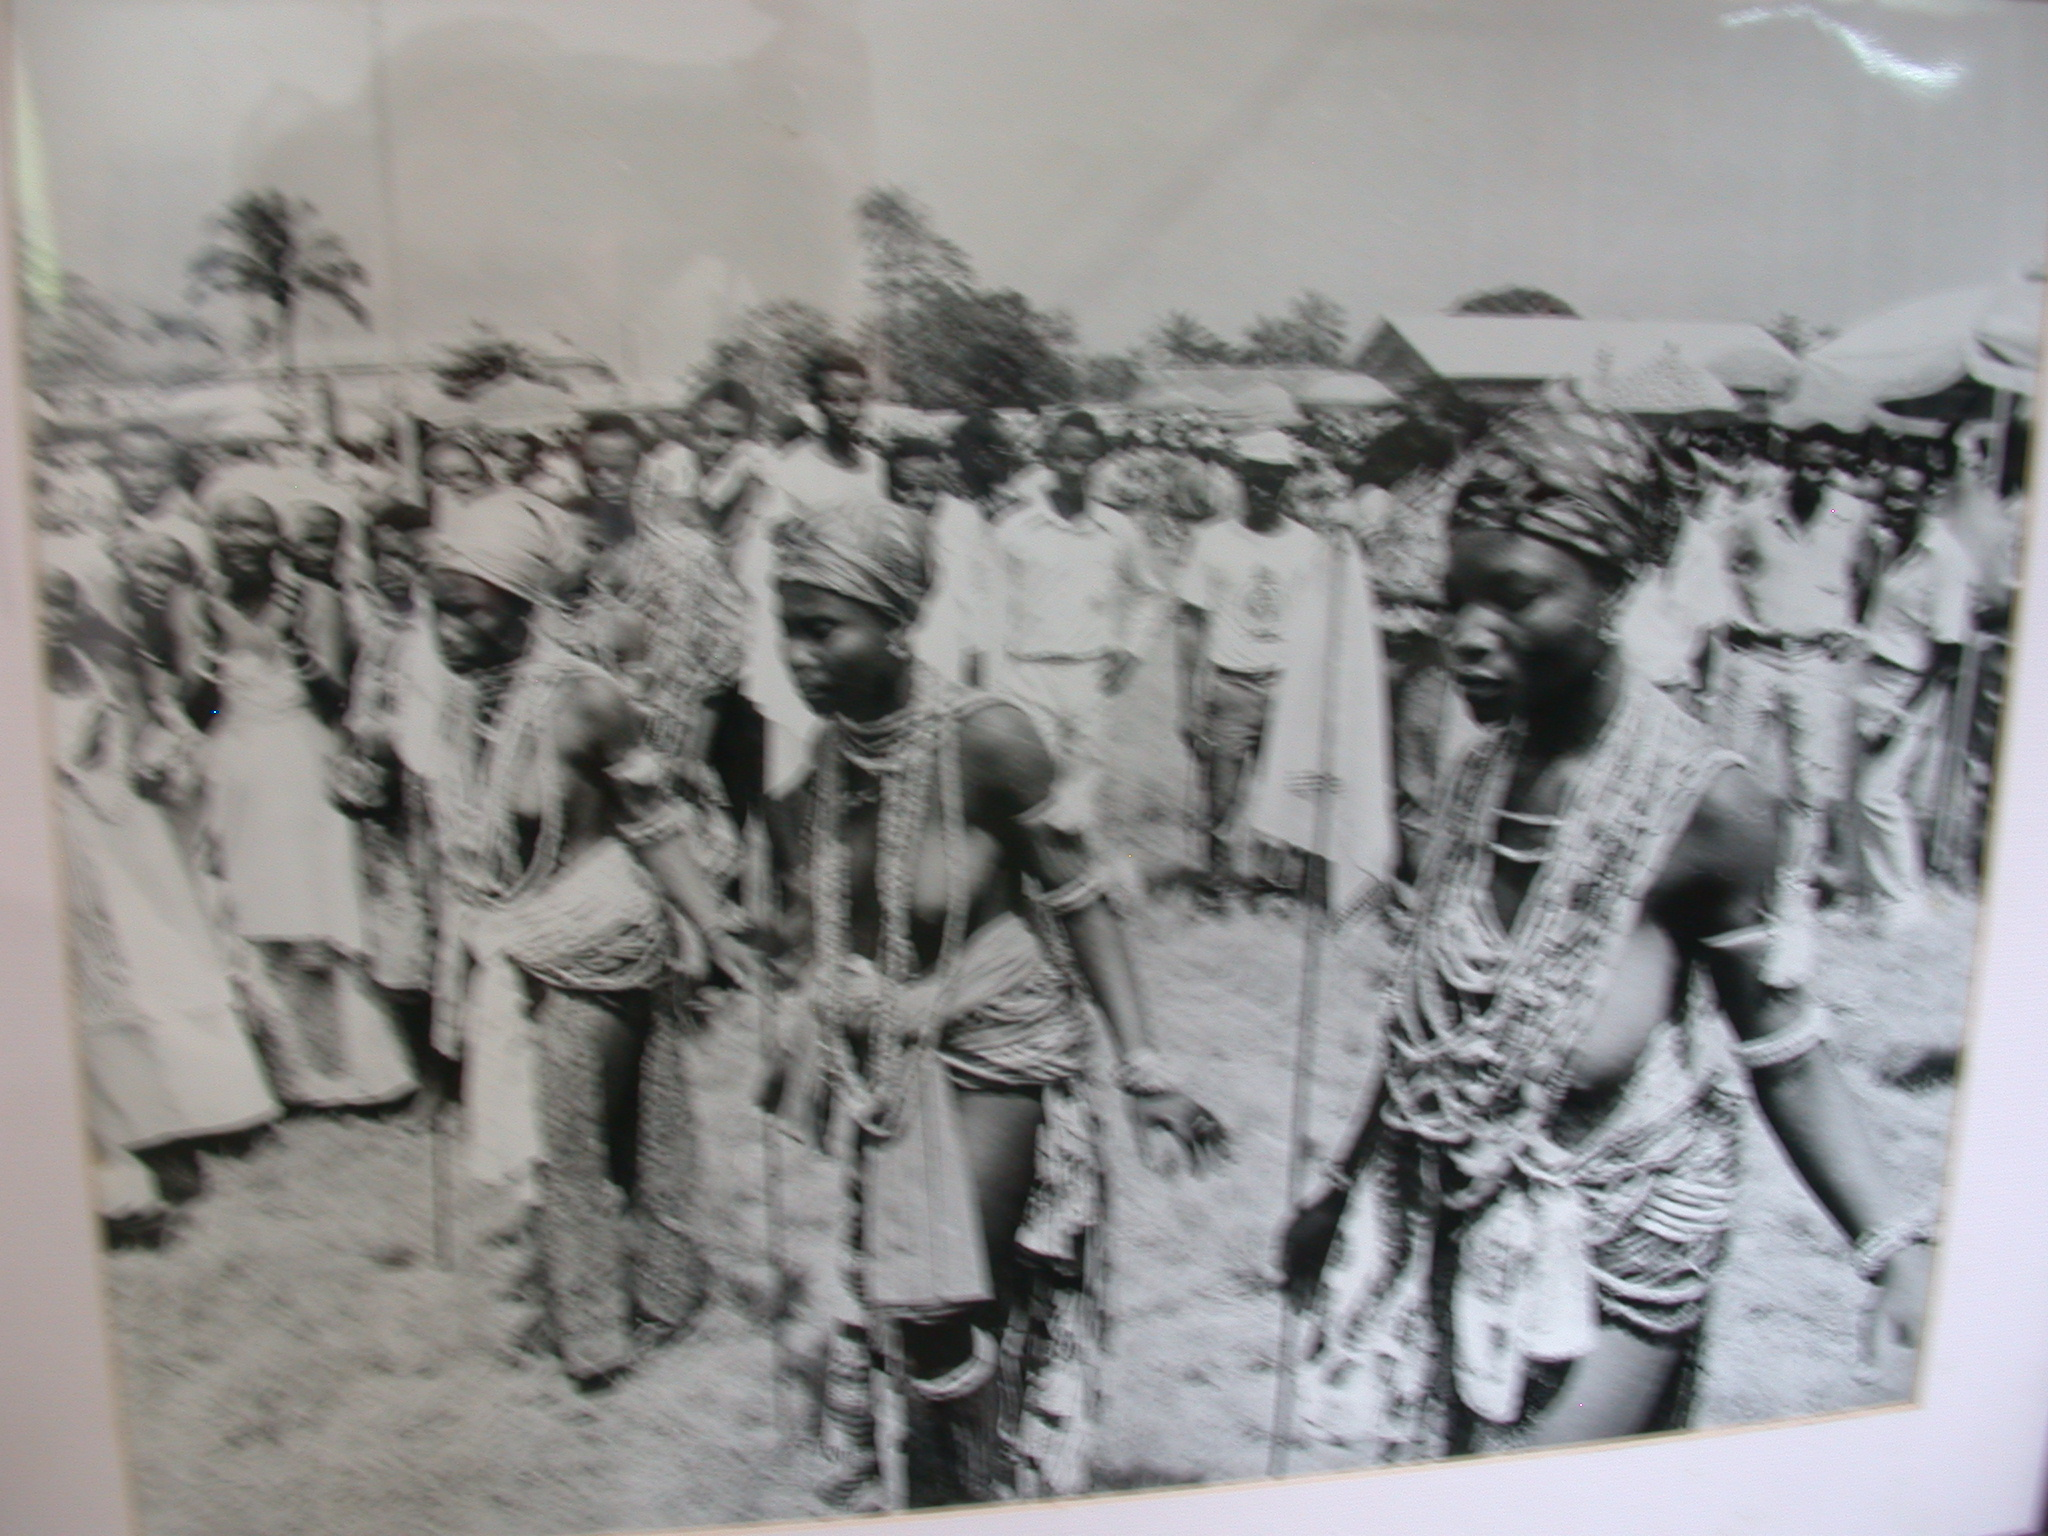 Picture of Puberty Dance by Shai Girls, National Musem, Accra, Ghana